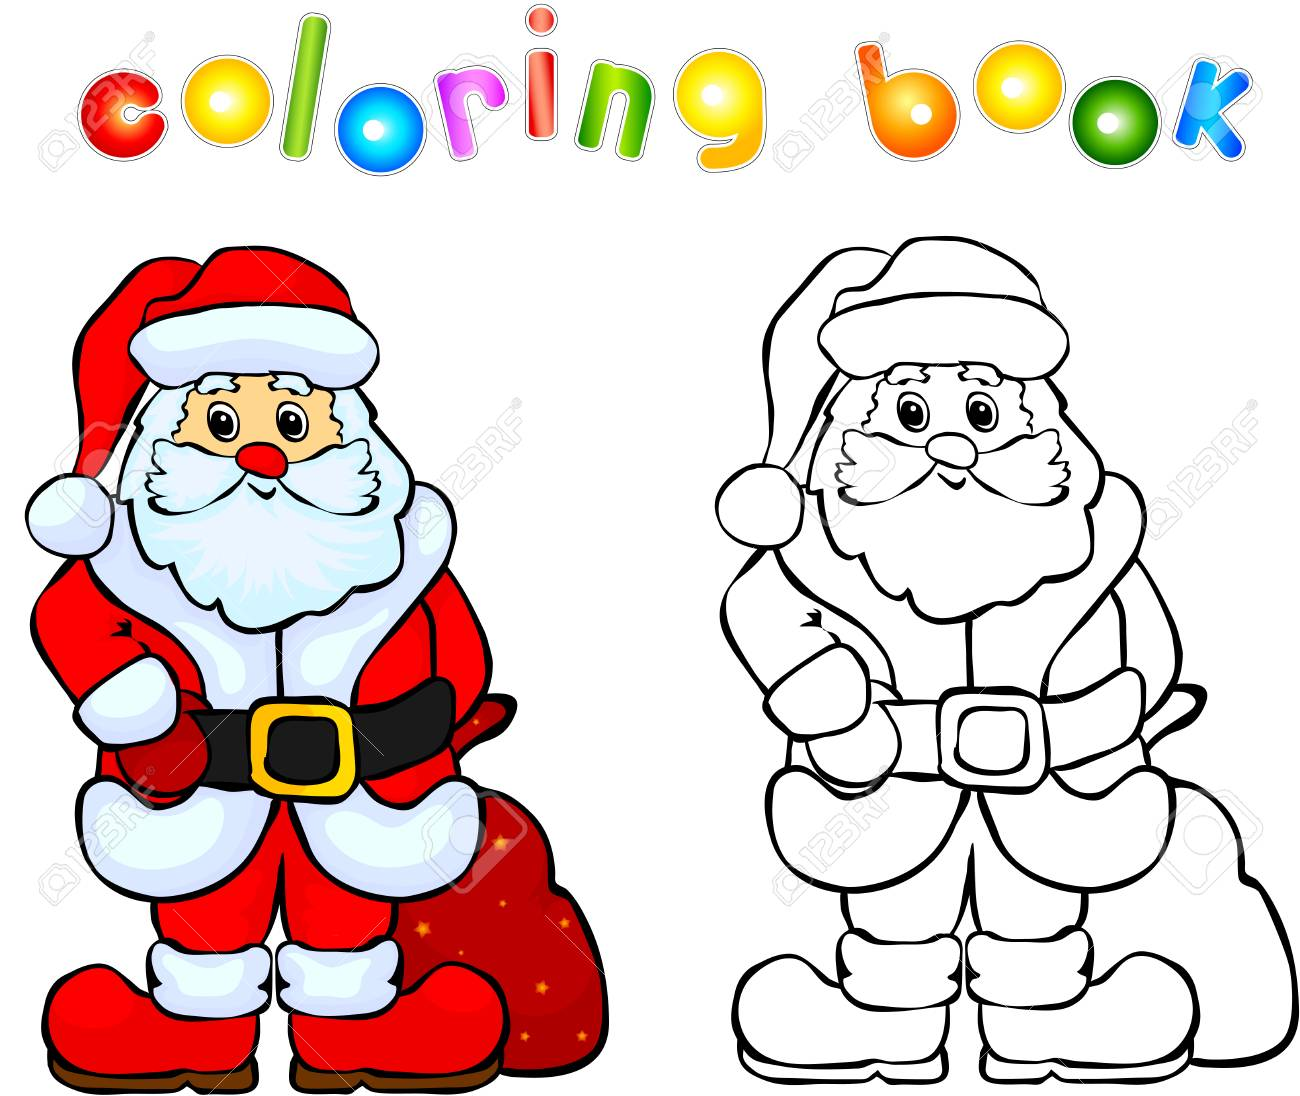 Funny Smiling Santa Claus Coloring Book Illustration For Children Stock Photo Picture And Royalty Free Image Image 42567867